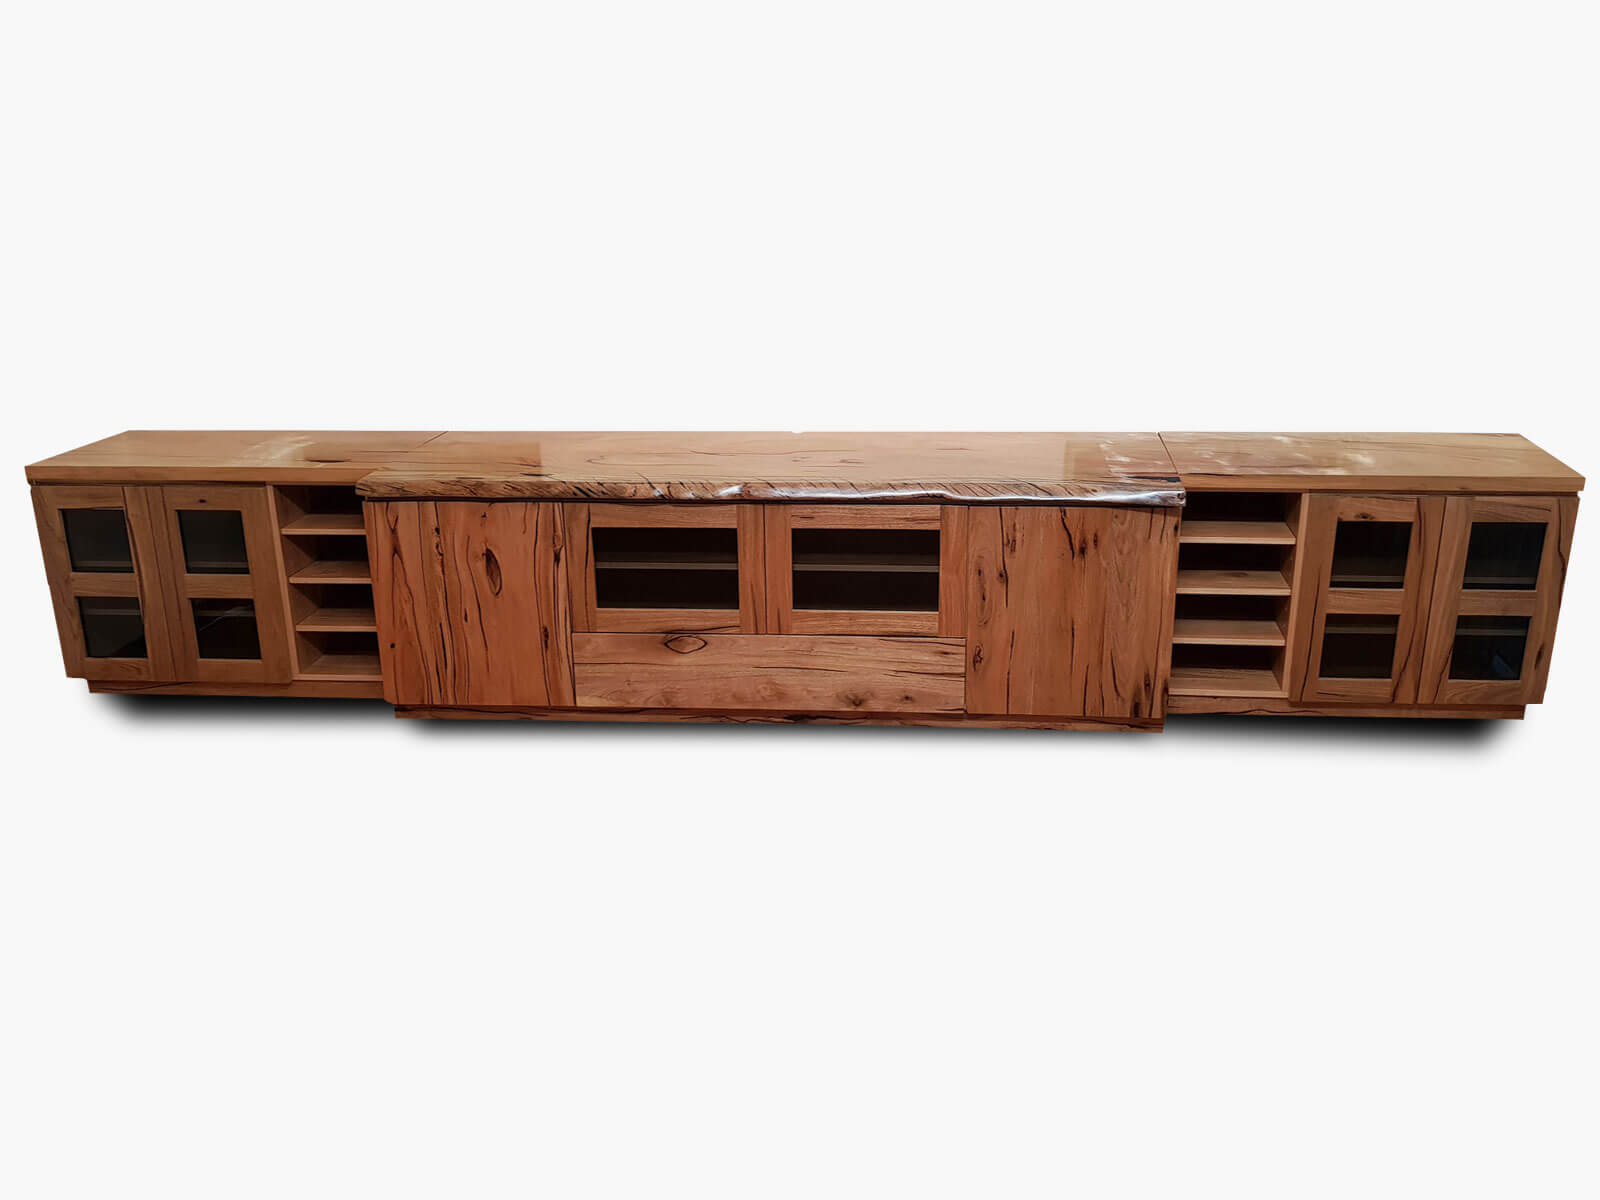 Shenton-Park-Nartural-Raw-TV Timber Furniture